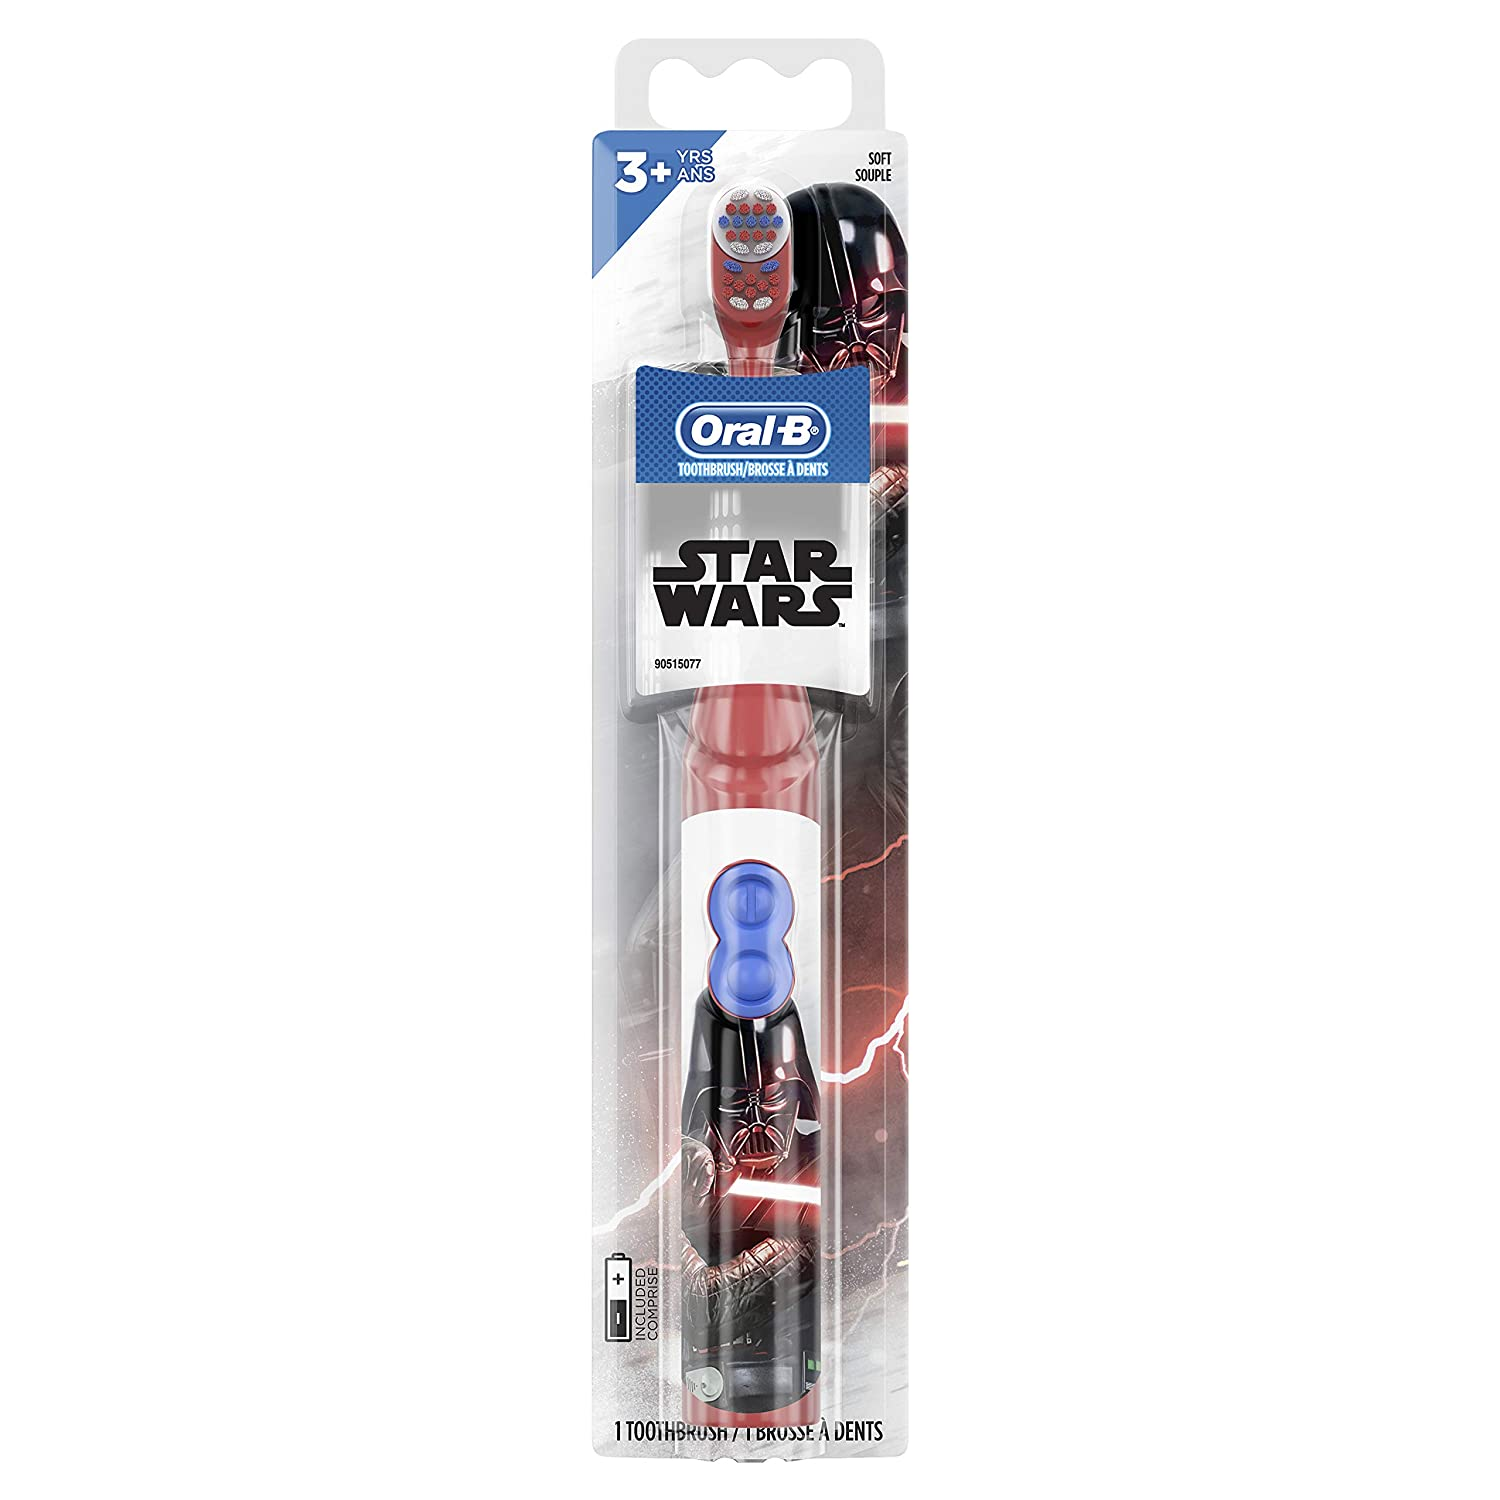 26. Oral-B Kids Battery Power Electric Toothbrush Featuring Disney's STAR WARS (for age 3+)